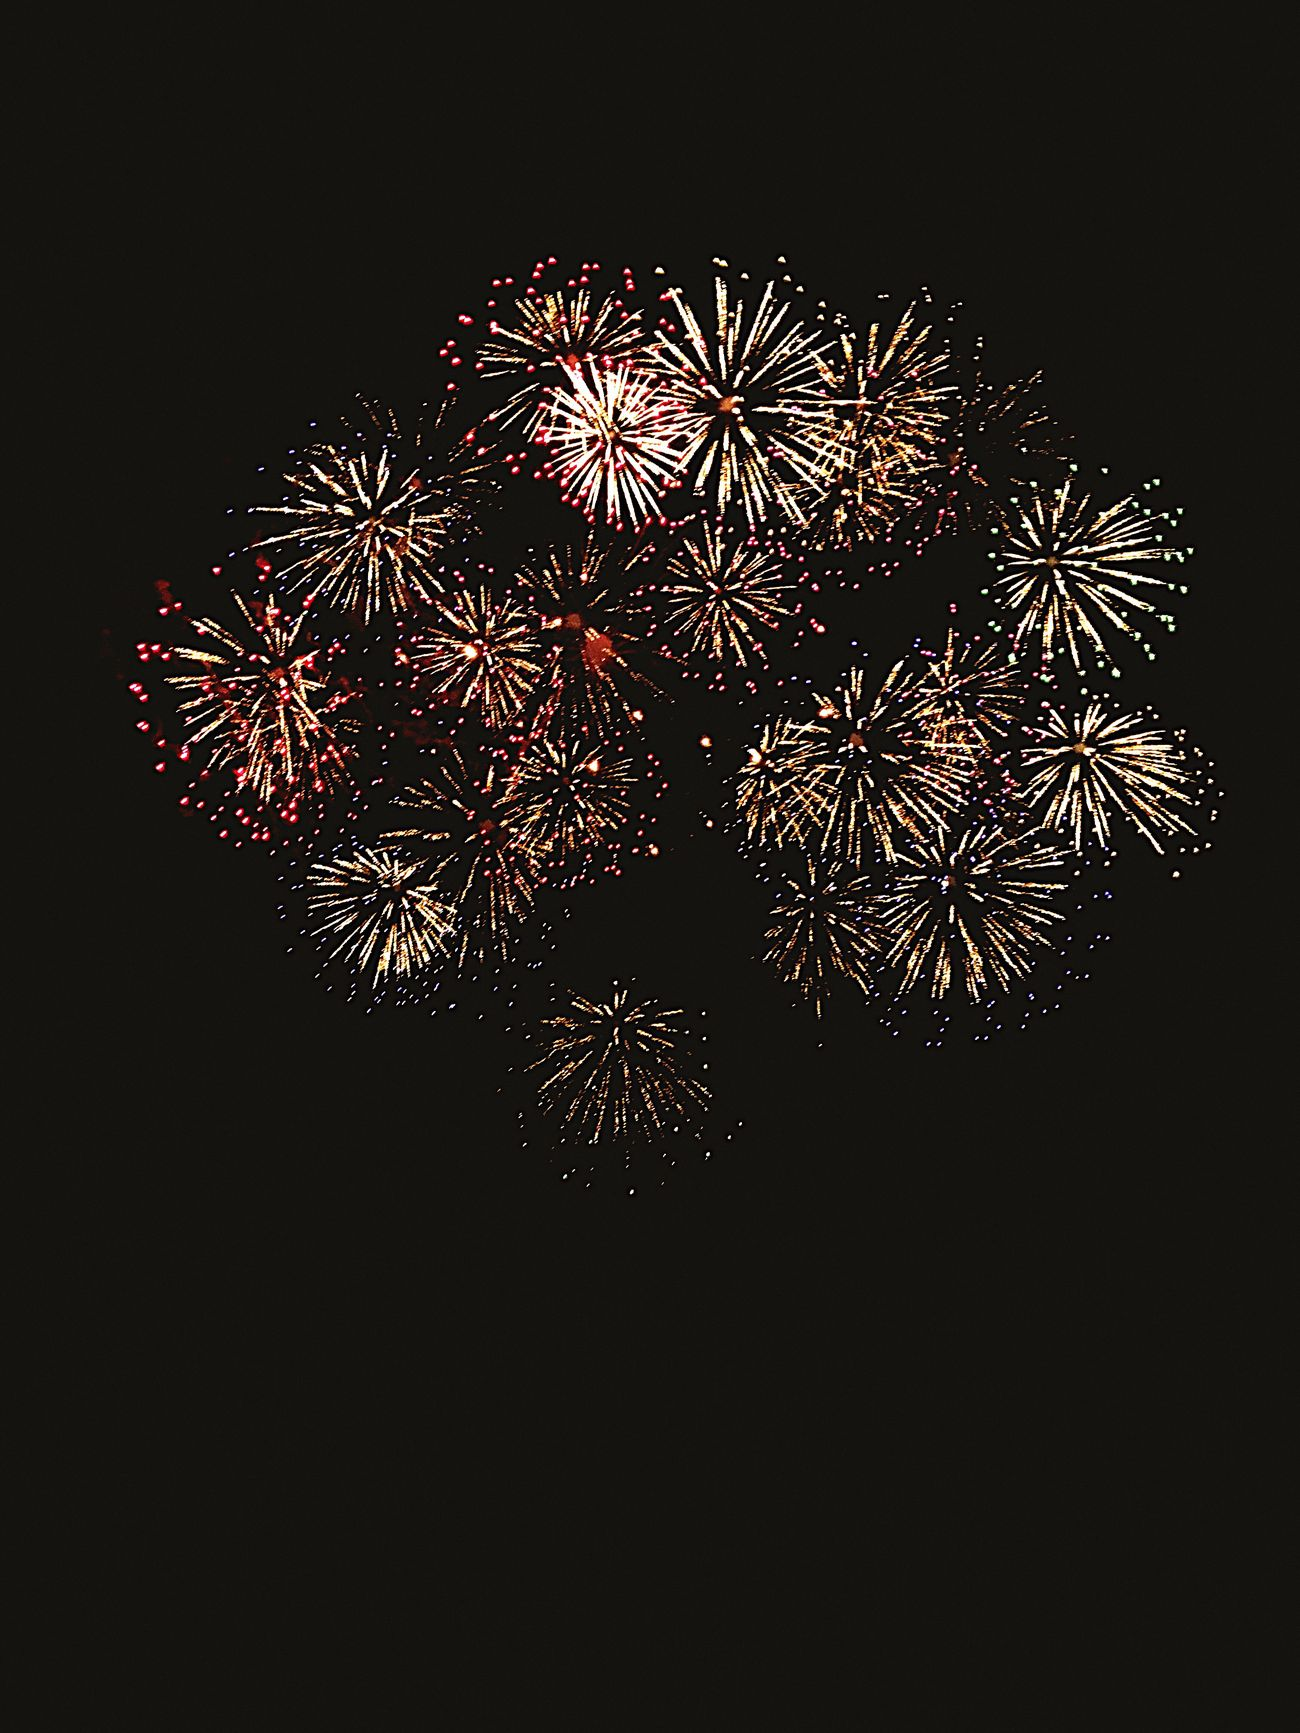 Firework Display Night Dark Sky Fireworks Fireworksphotography Firework Fireworks In The Sky Fireworks! Fireworks Festival Hanabi Japanesefirework JapaneseFestival Beautiful Scenery 花火大会 玉川花火大会